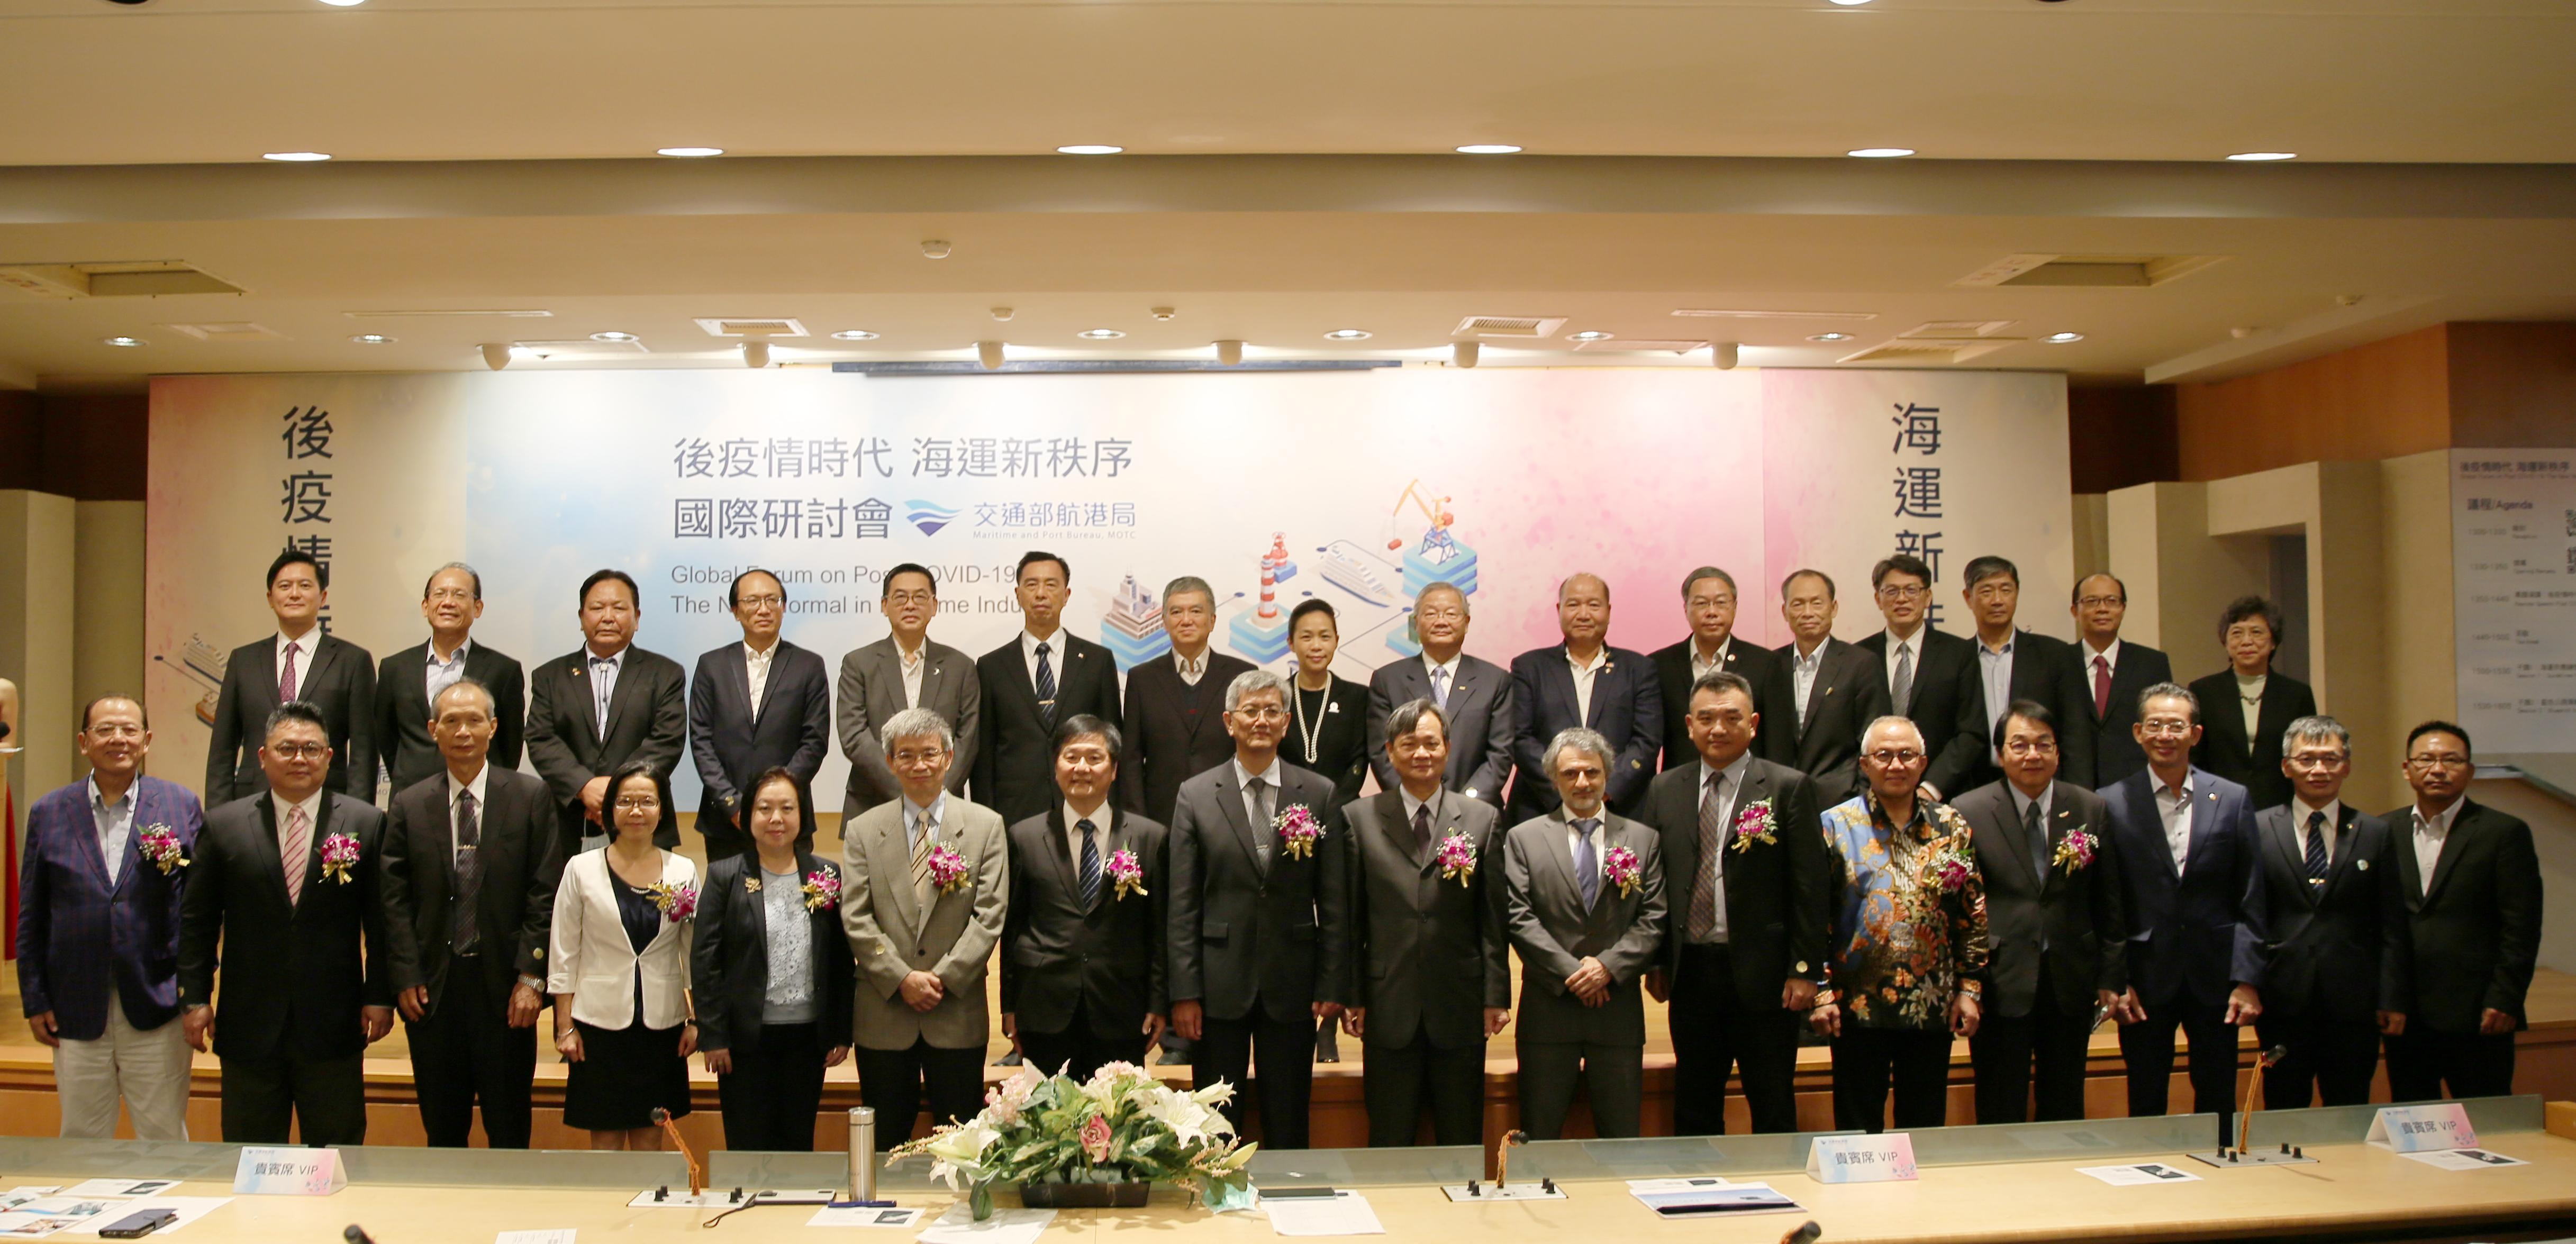 Group photo of distinguished guests at the International Forum